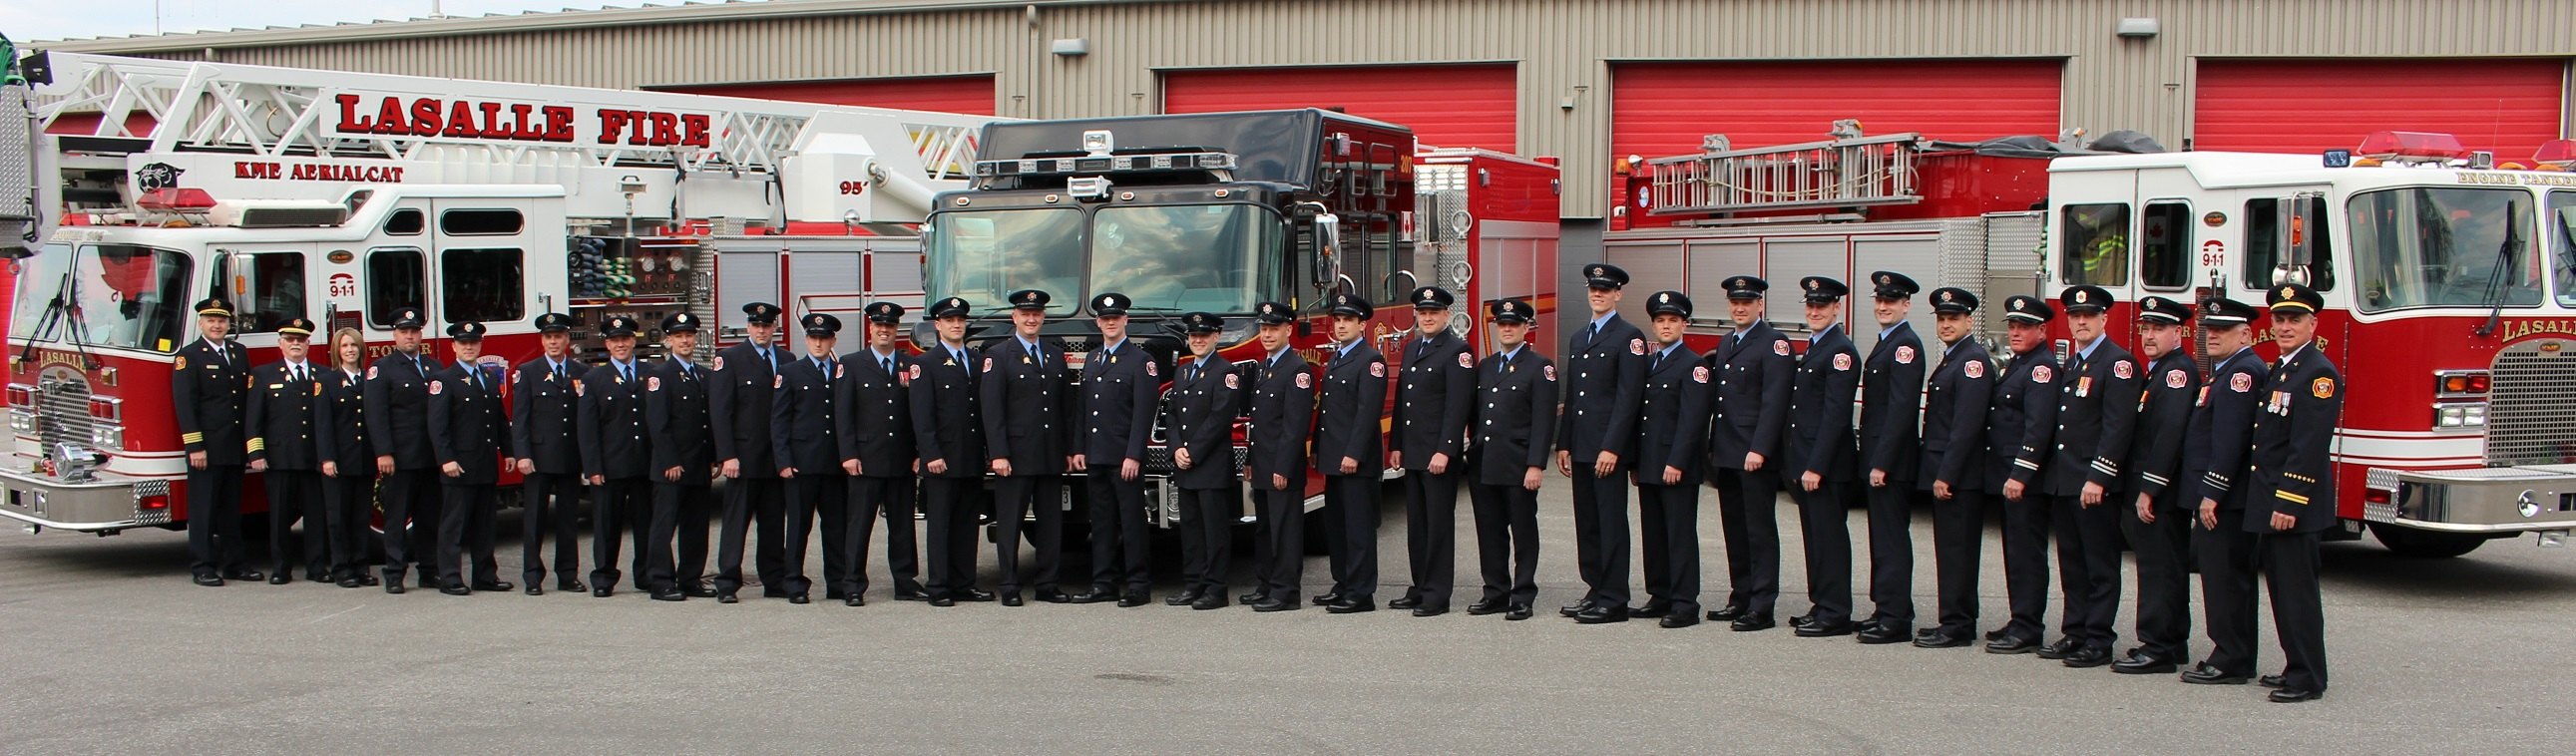 Group photo of all the LaSalle Fire Service Team